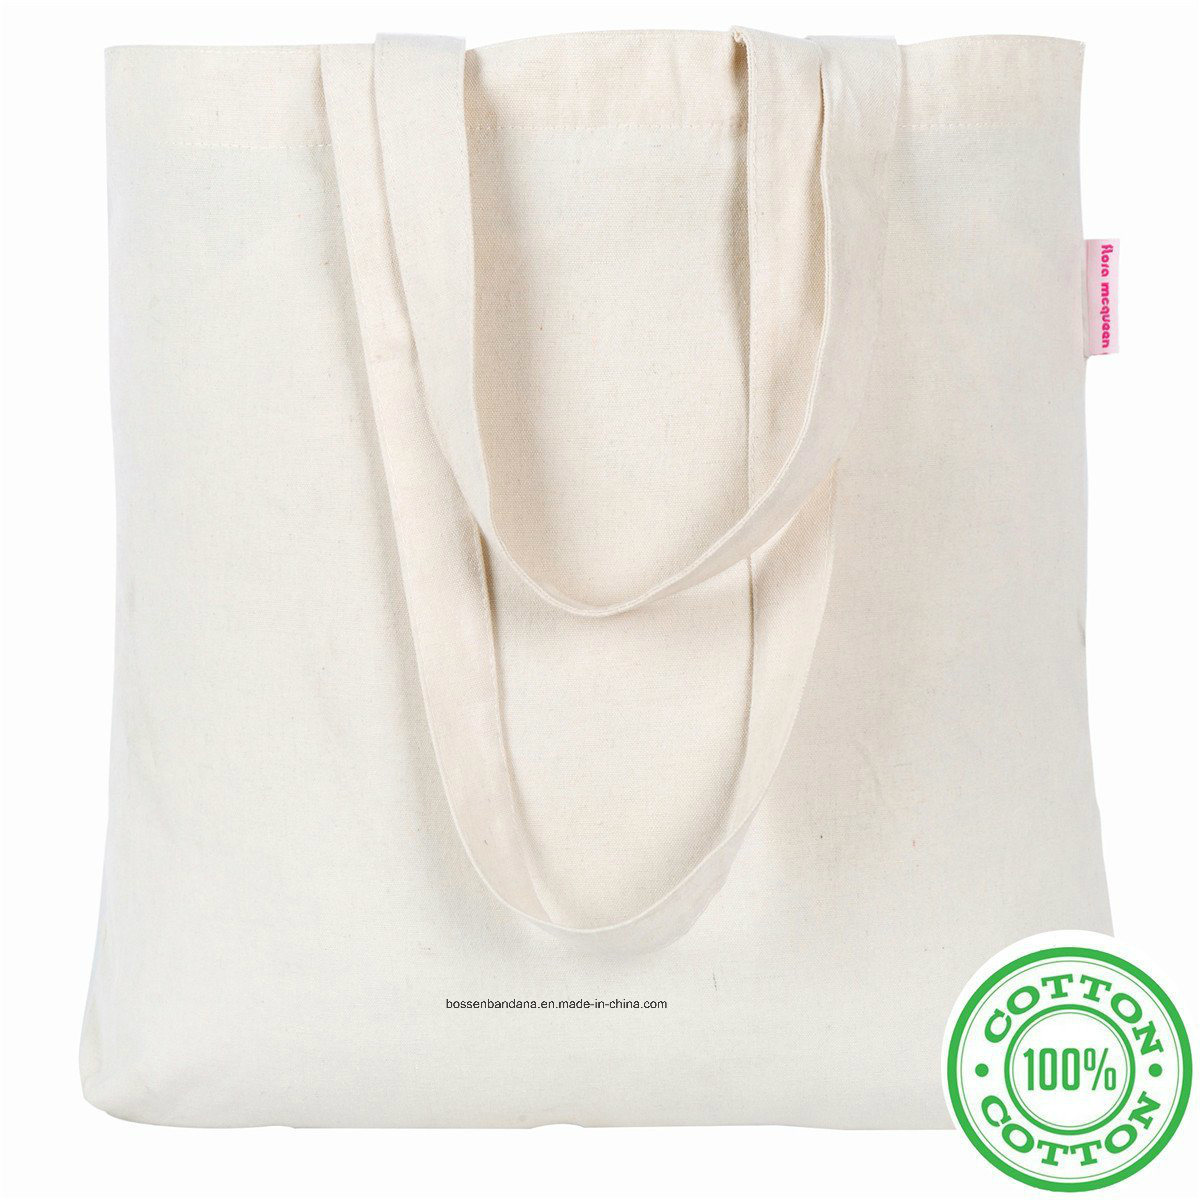 OEM Produce Logo Printed Promotional Duty Natural Cotton Canvas Craft Tote Handles Bag pictures & photos